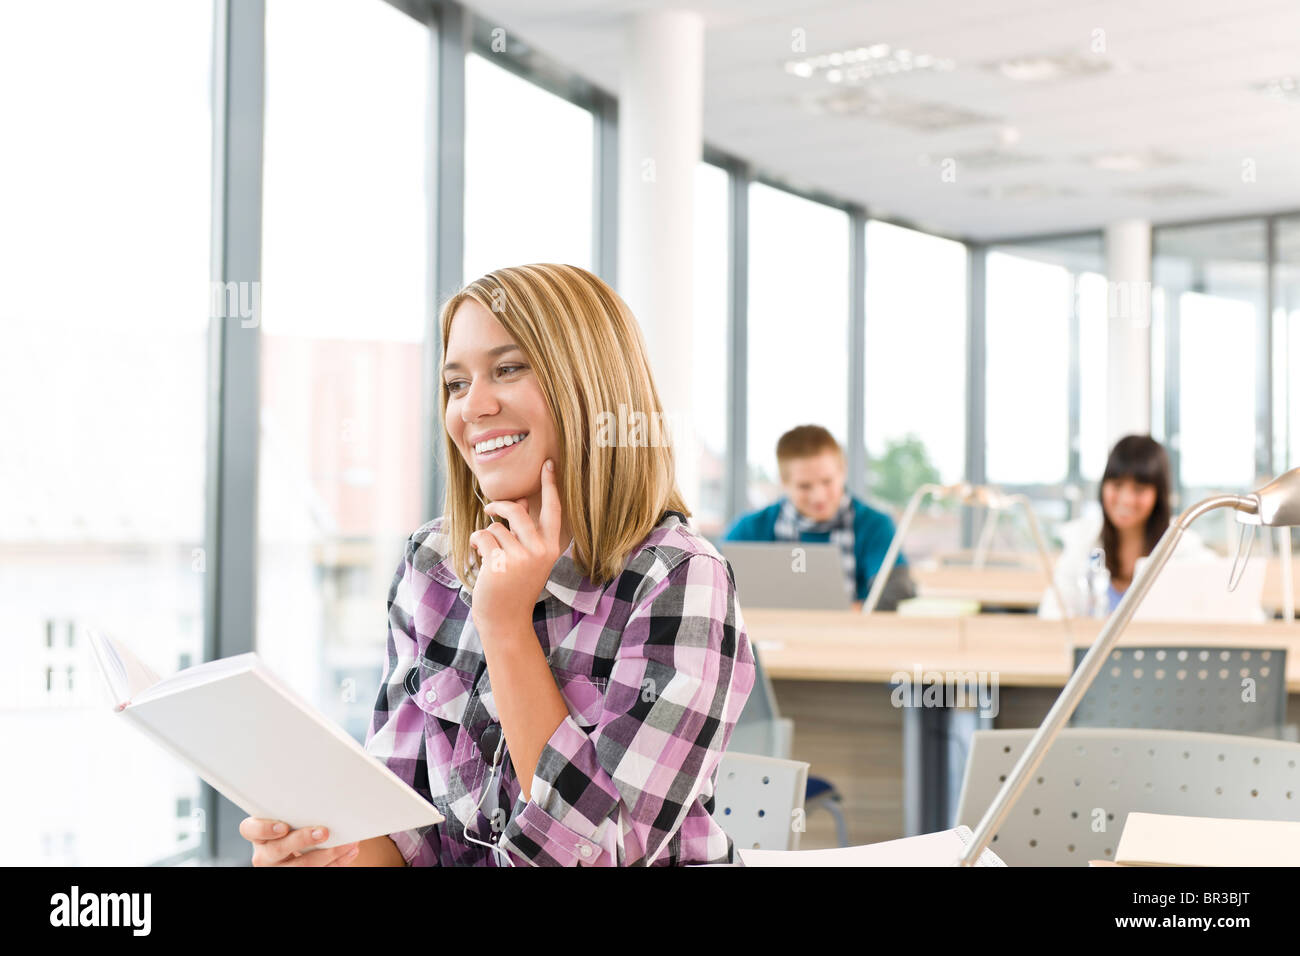 Happy female student with book in classroom, schoolmates in background - Stock Image